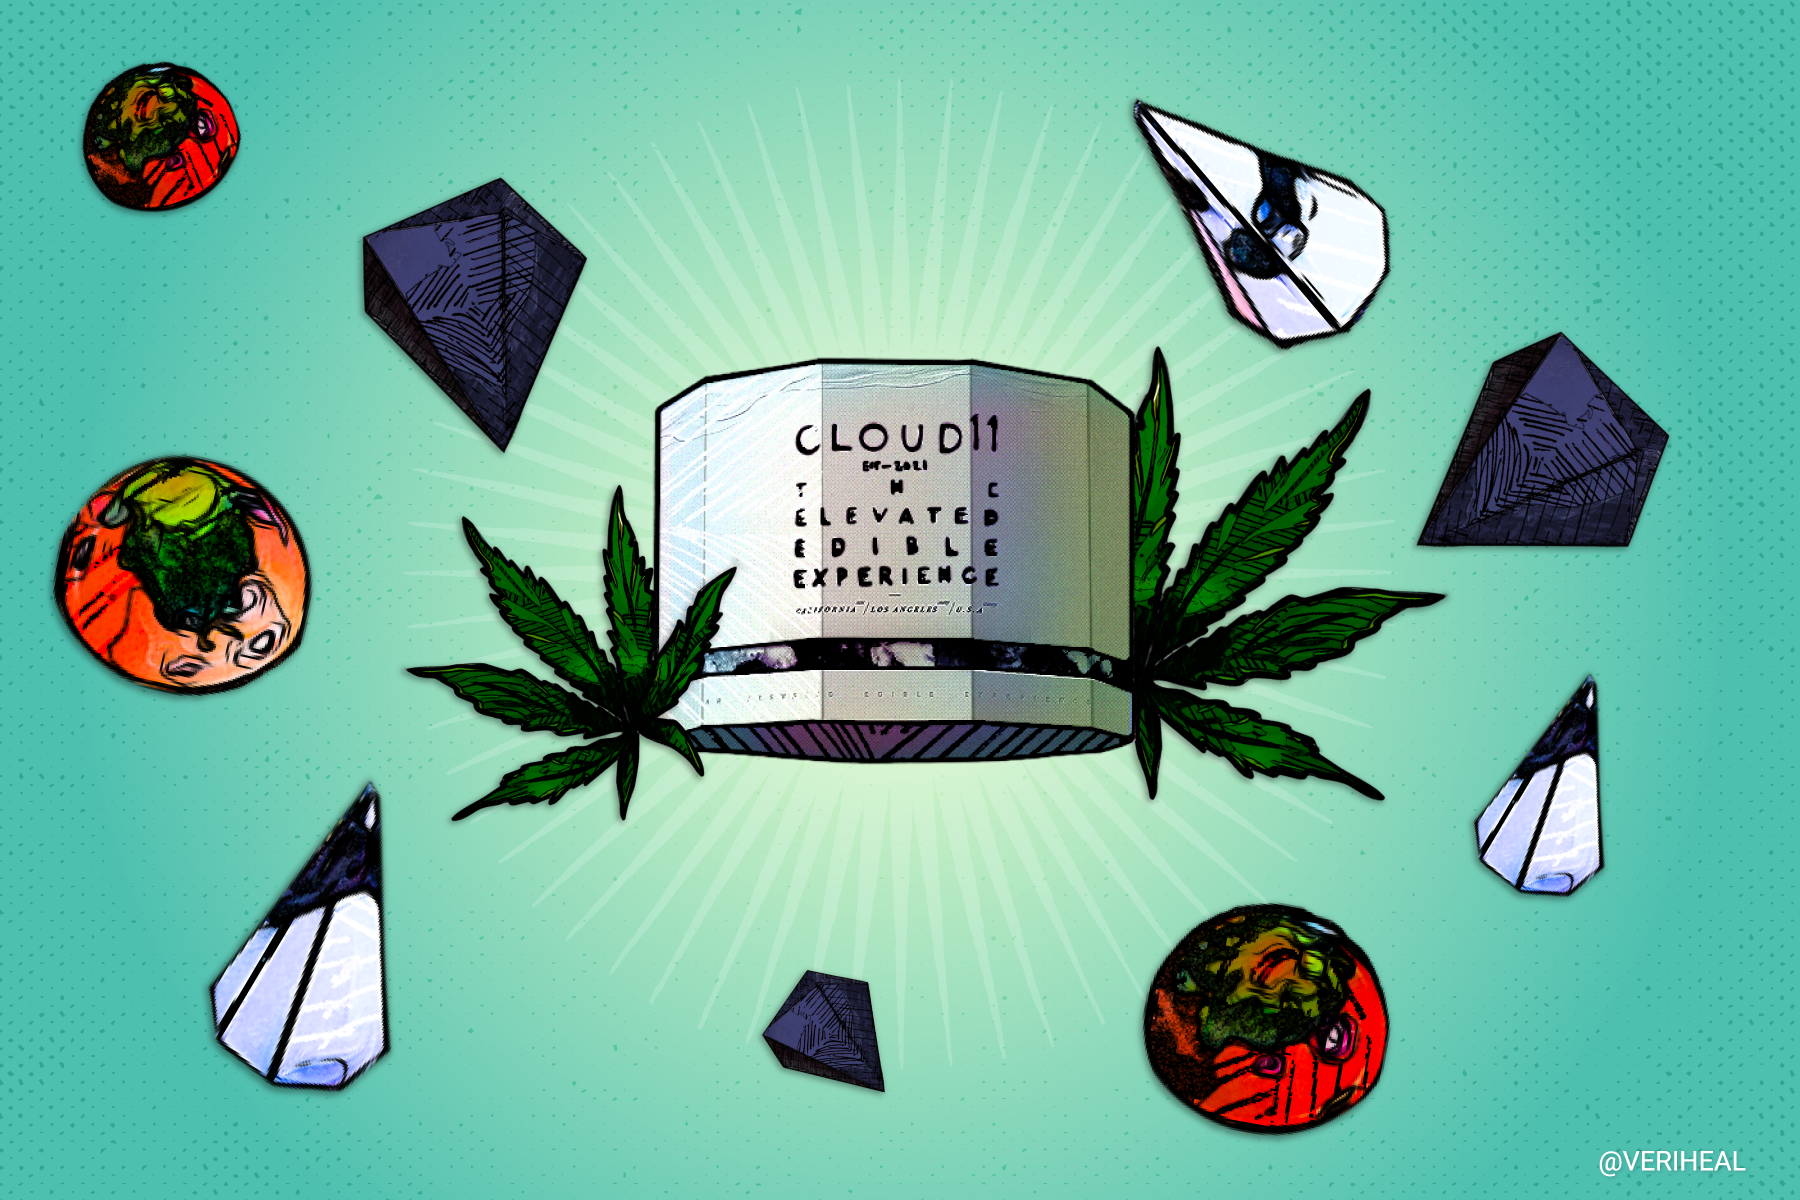 Handcrafted Cannabis Confections and White Glove Delivery? Meet LA's Cloud 11